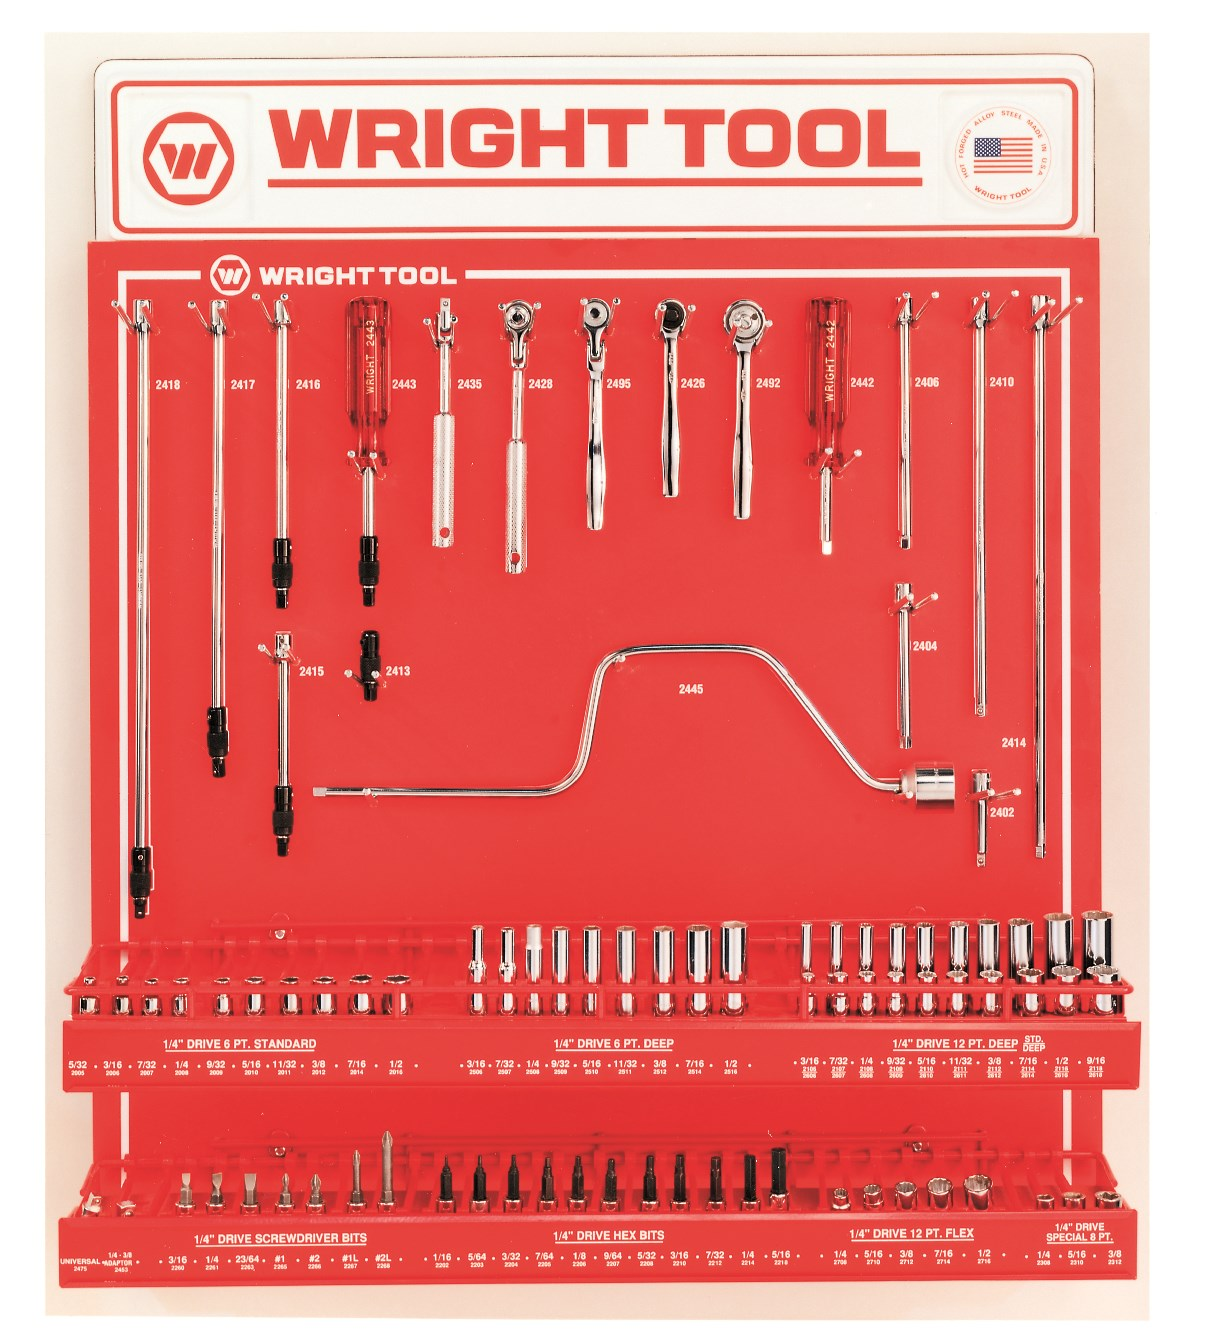 Wright Tool D982 79 Piece 1/4-inch Drive 6 & 12-Point Sockets, Handles & Attachments